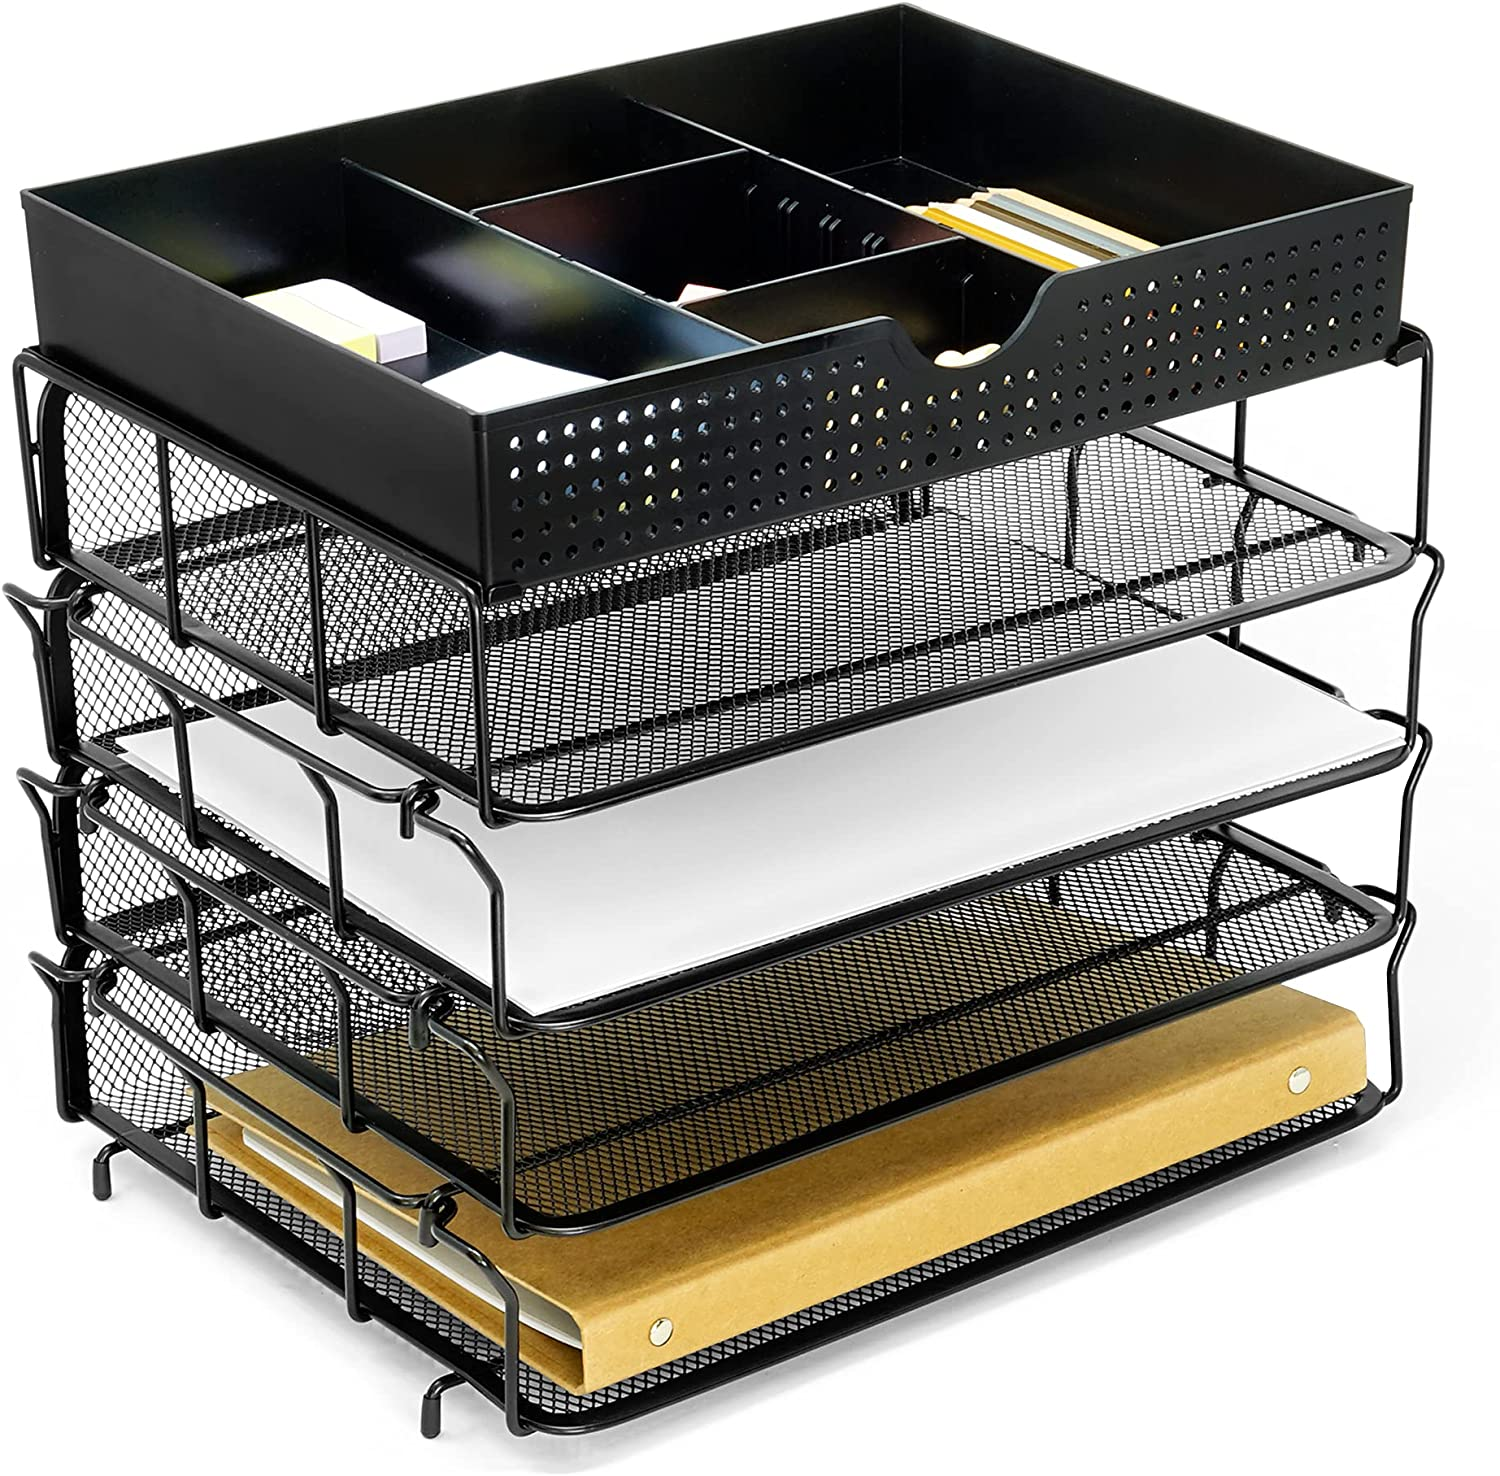 CAXXA 4 Max 57% OFF Trays Popular products Stackable Letter File Desk Organizer Deskto Tray